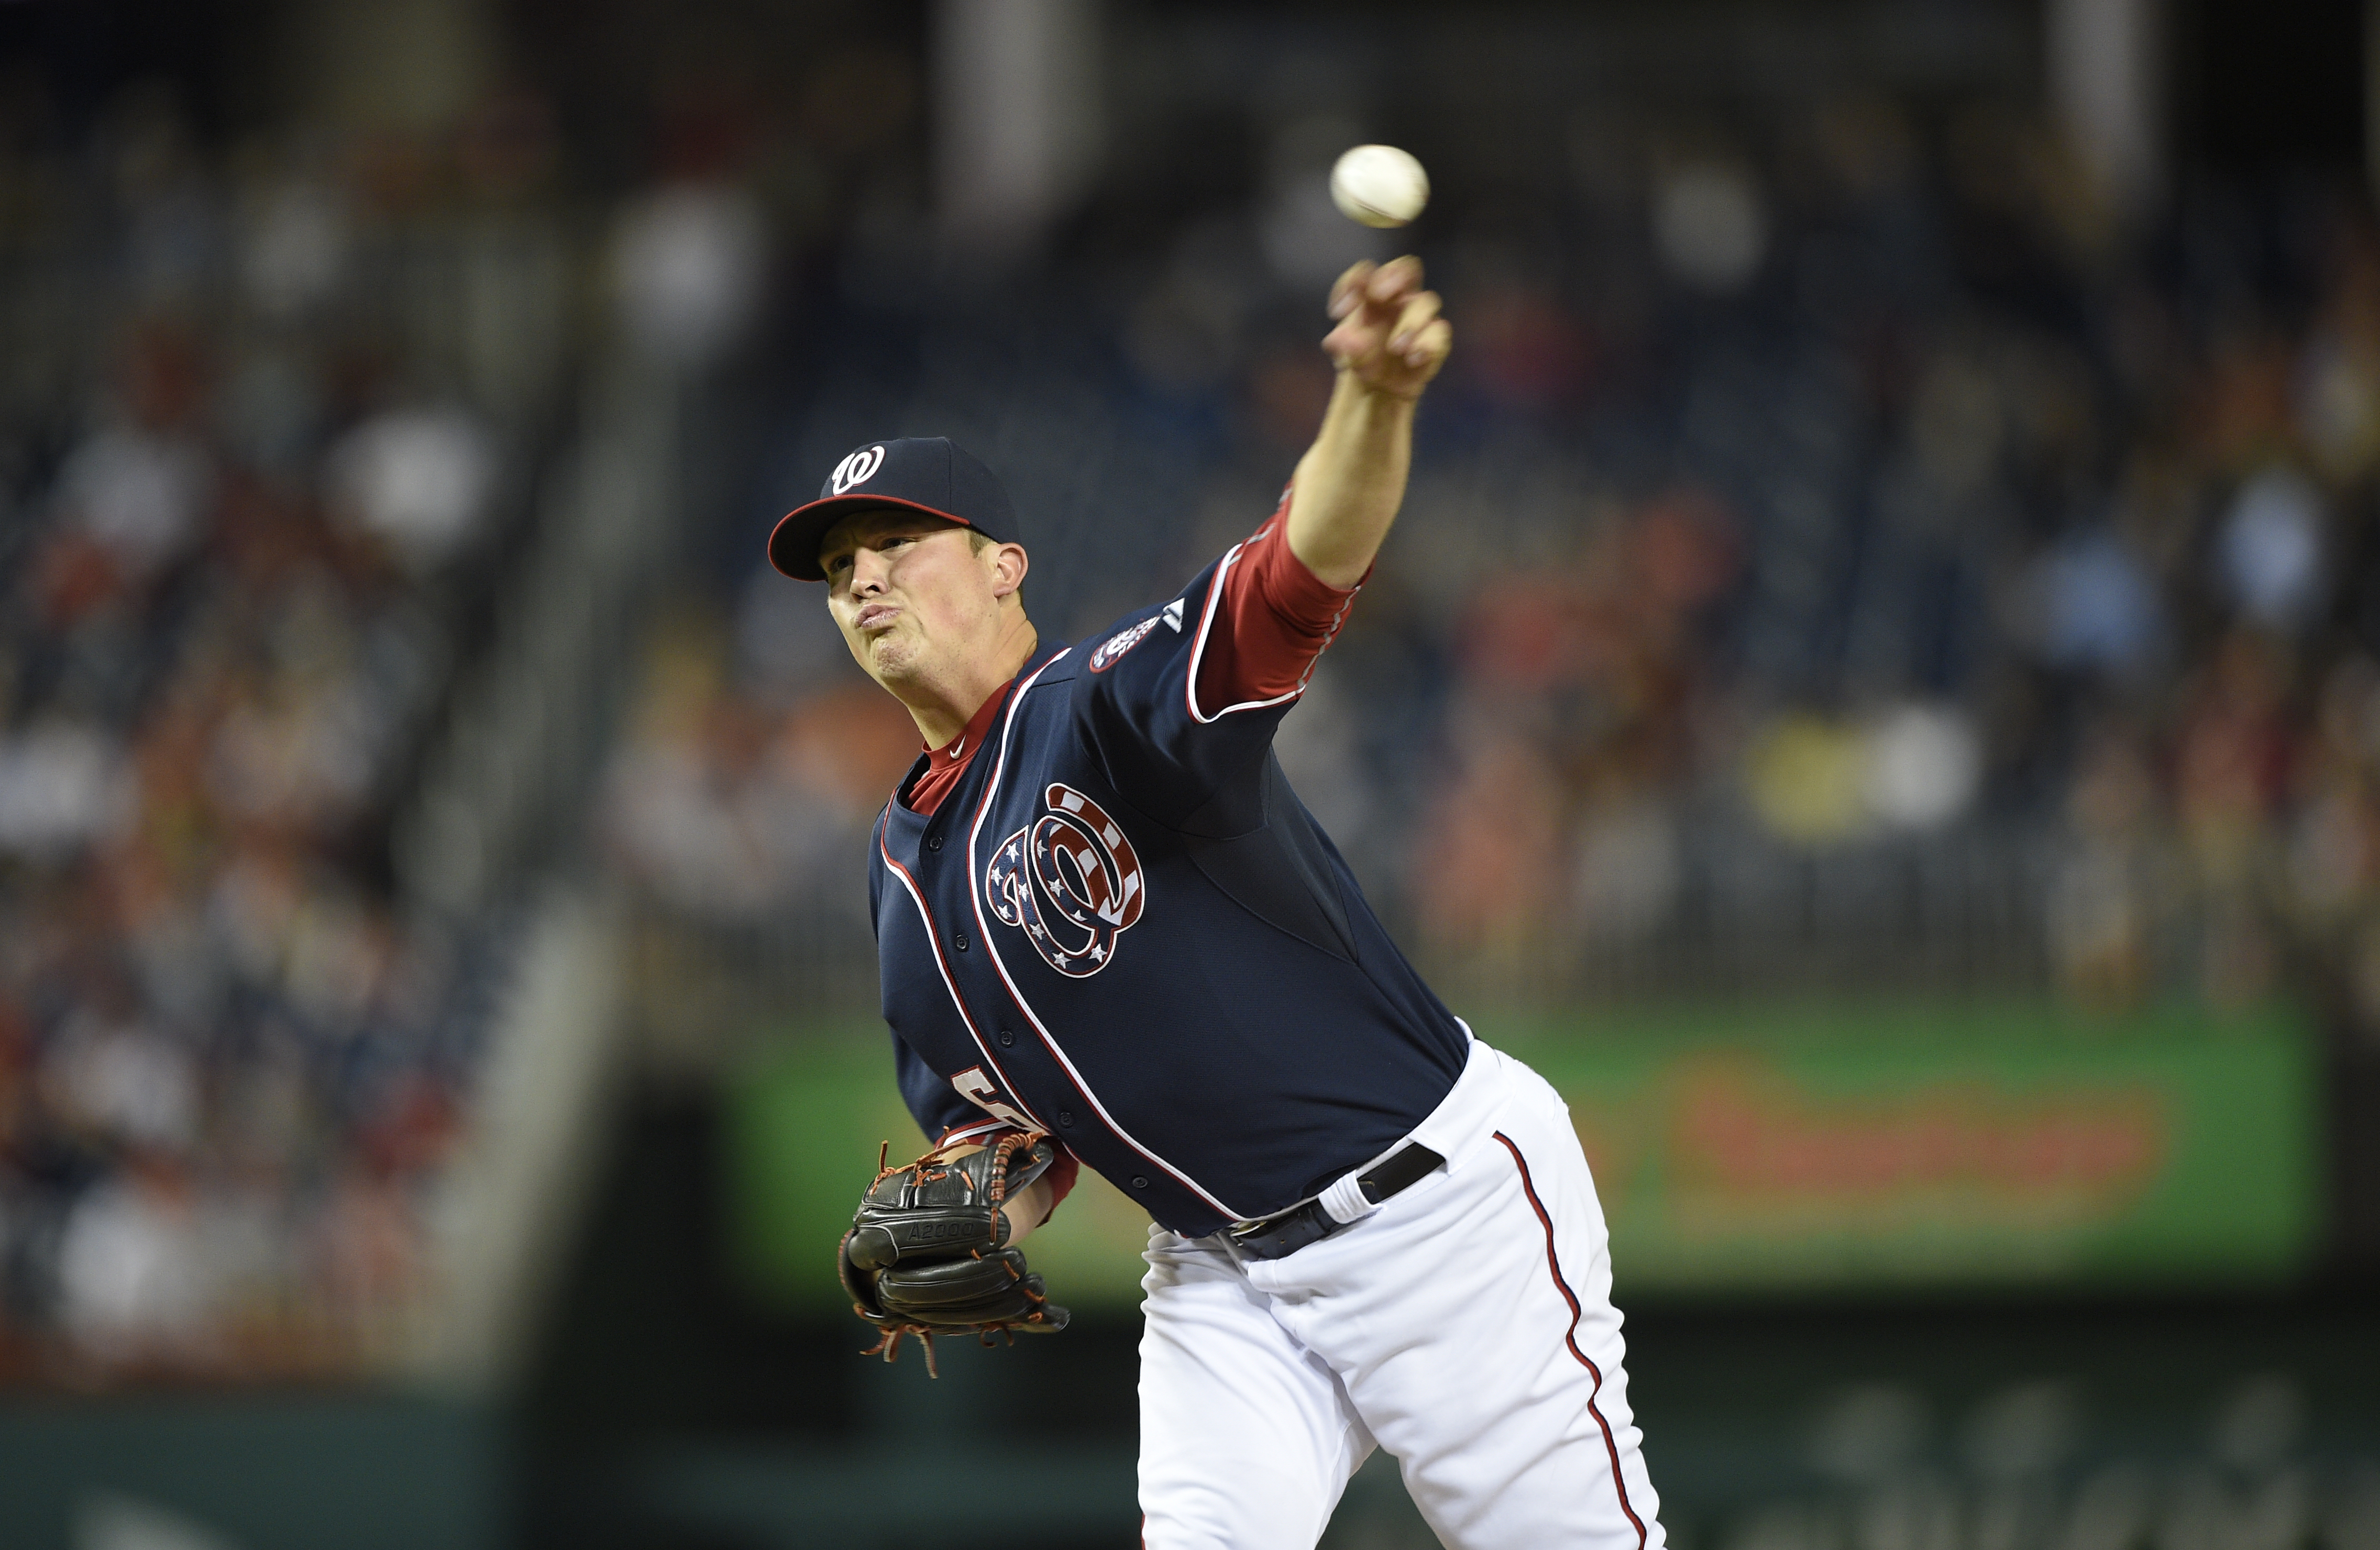 In this photo taken Sept. 25, 2015, Washington Nationals relief pitcher Sammy Solis (36) pitches against the Philadelphia Phillies during a baseball game in Washington. When the Washington Nationals face the Los Angeles Dodgers in the NL Division Series,